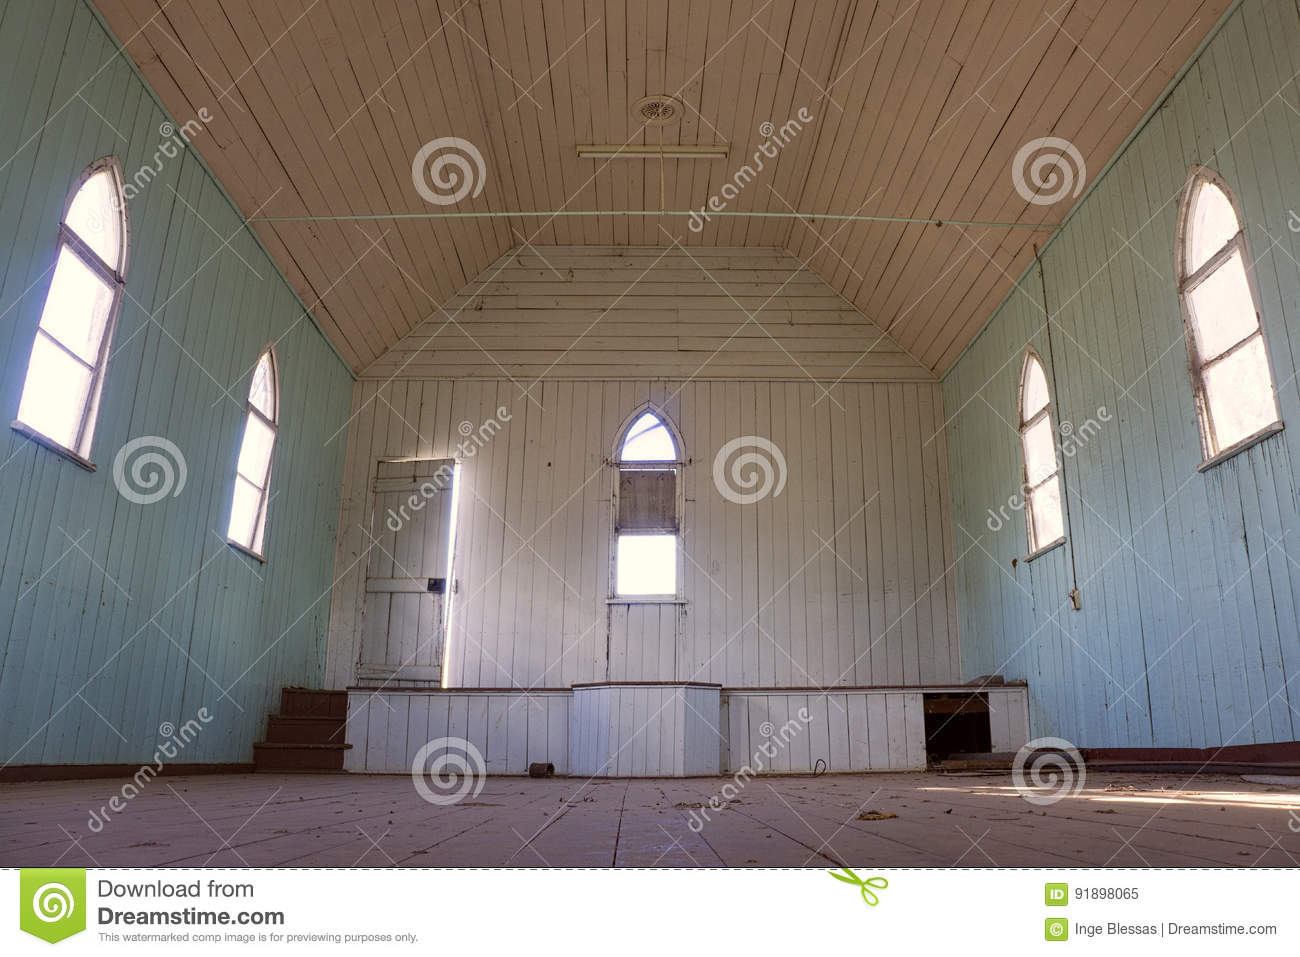 2 866 Country Church Interior Photos Free Royalty Free Stock Photos From Dreamstime